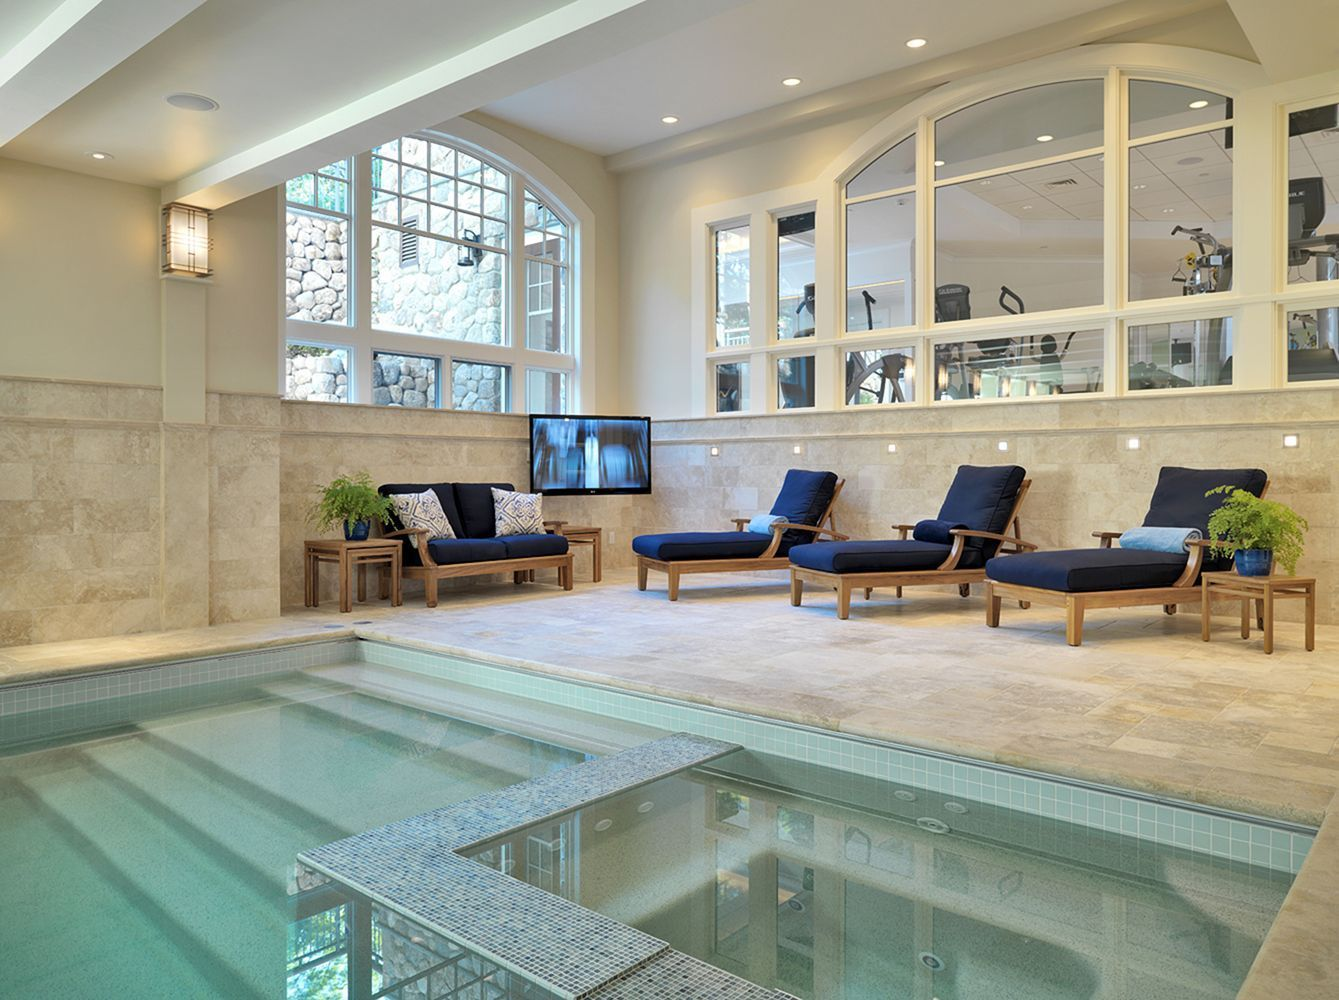 12 Amazing Indoor Swimming Pools Ideas For Cozy Summer At Your Home Home Diy Ideas Small Indoor Pool Indoor Pool Design Indoor Swimming Pool Design